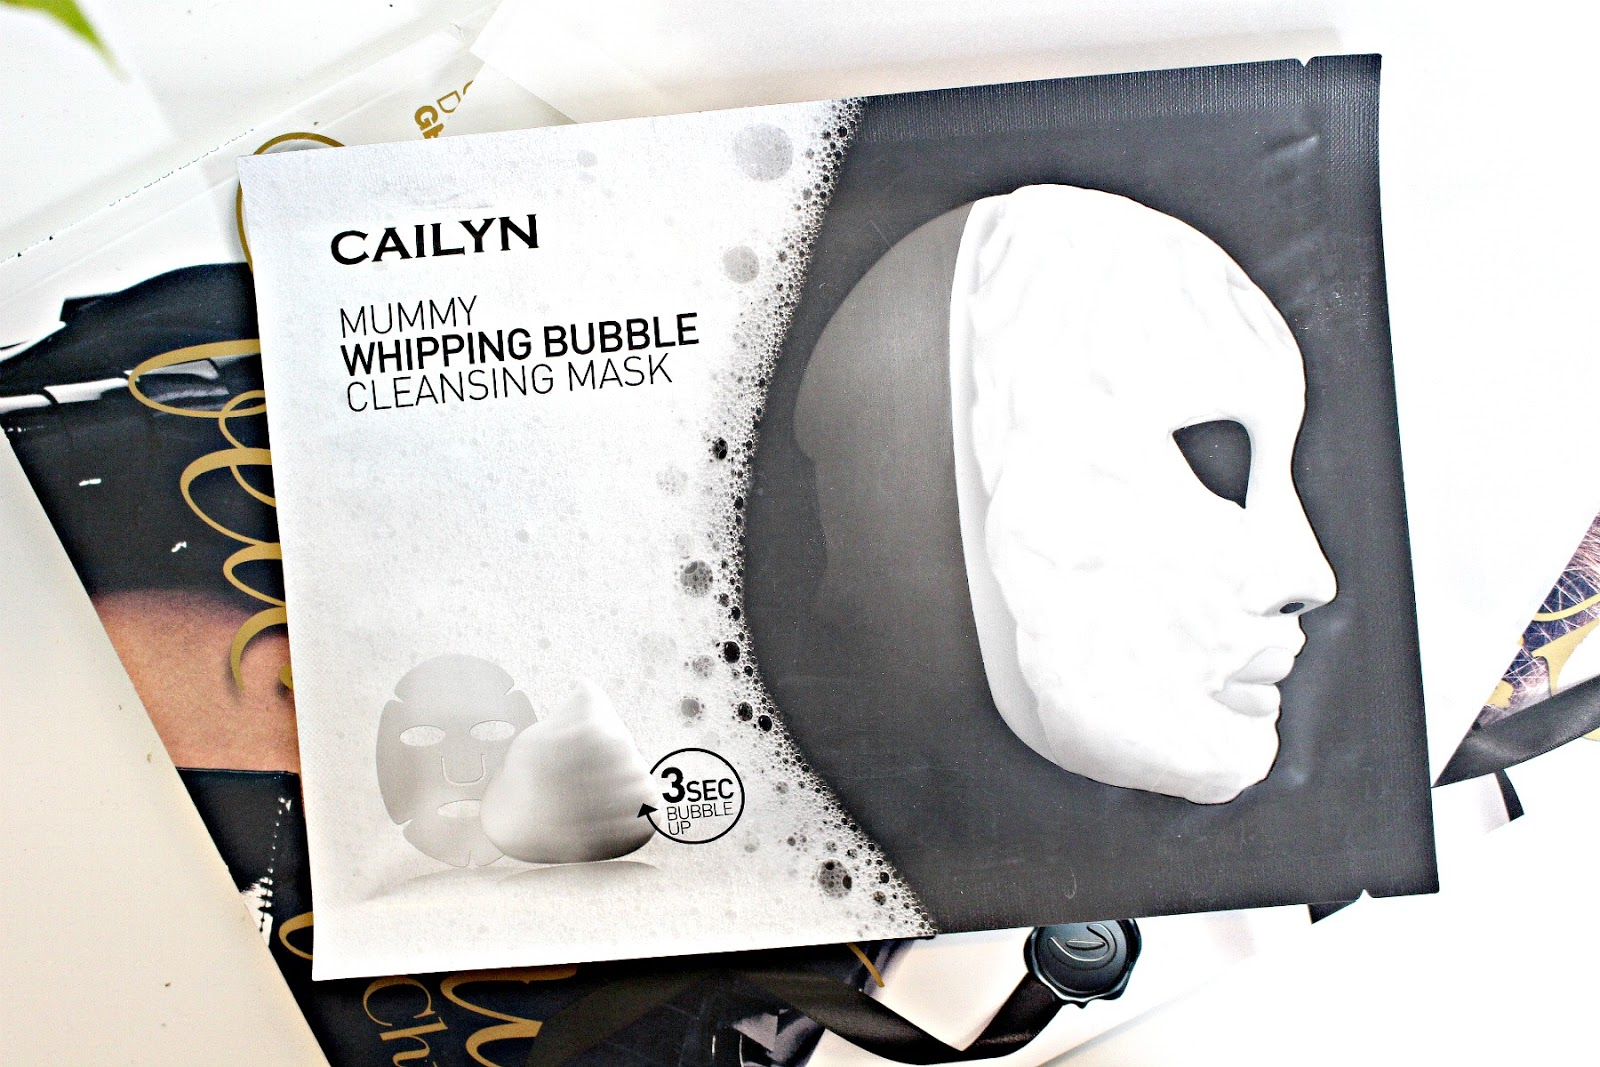 Cailyn Cosmetics Mummy Whipping Bubble Cleansing Mask